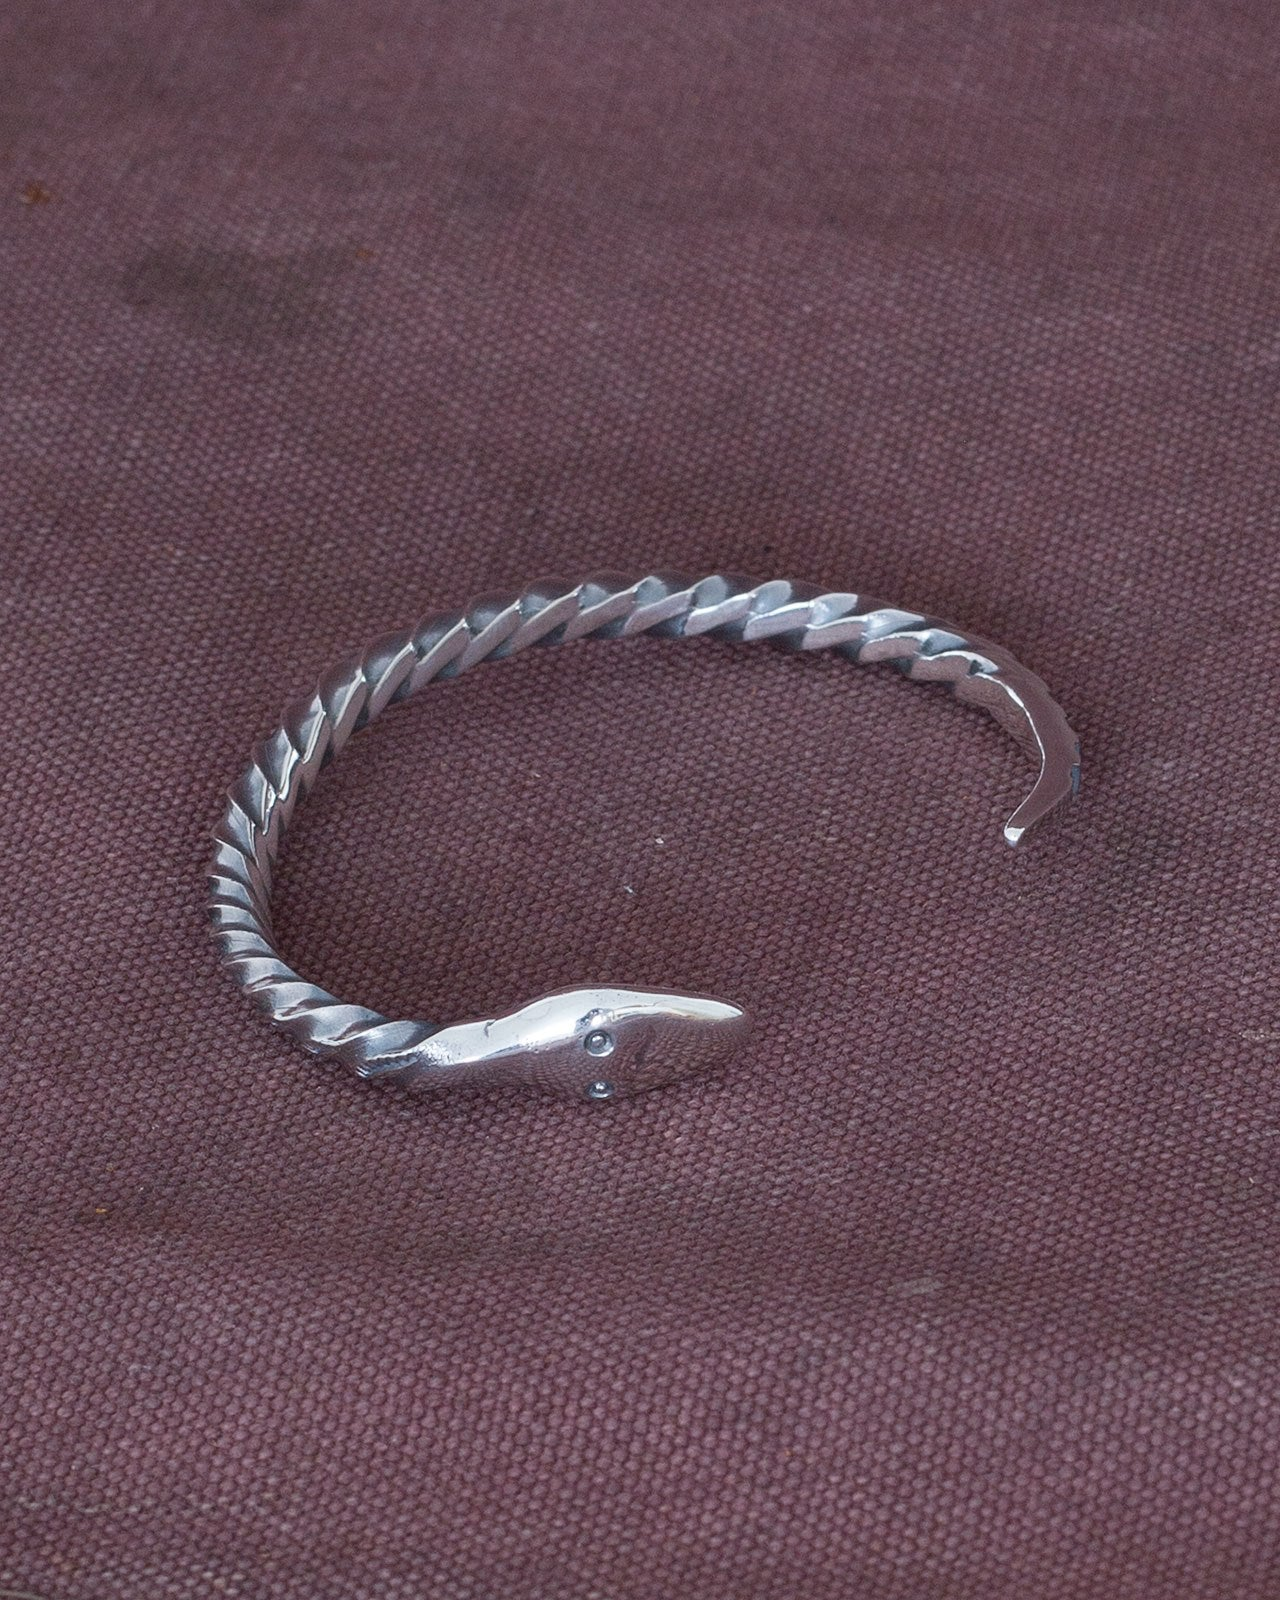 Larry Smith Snake Bracelet